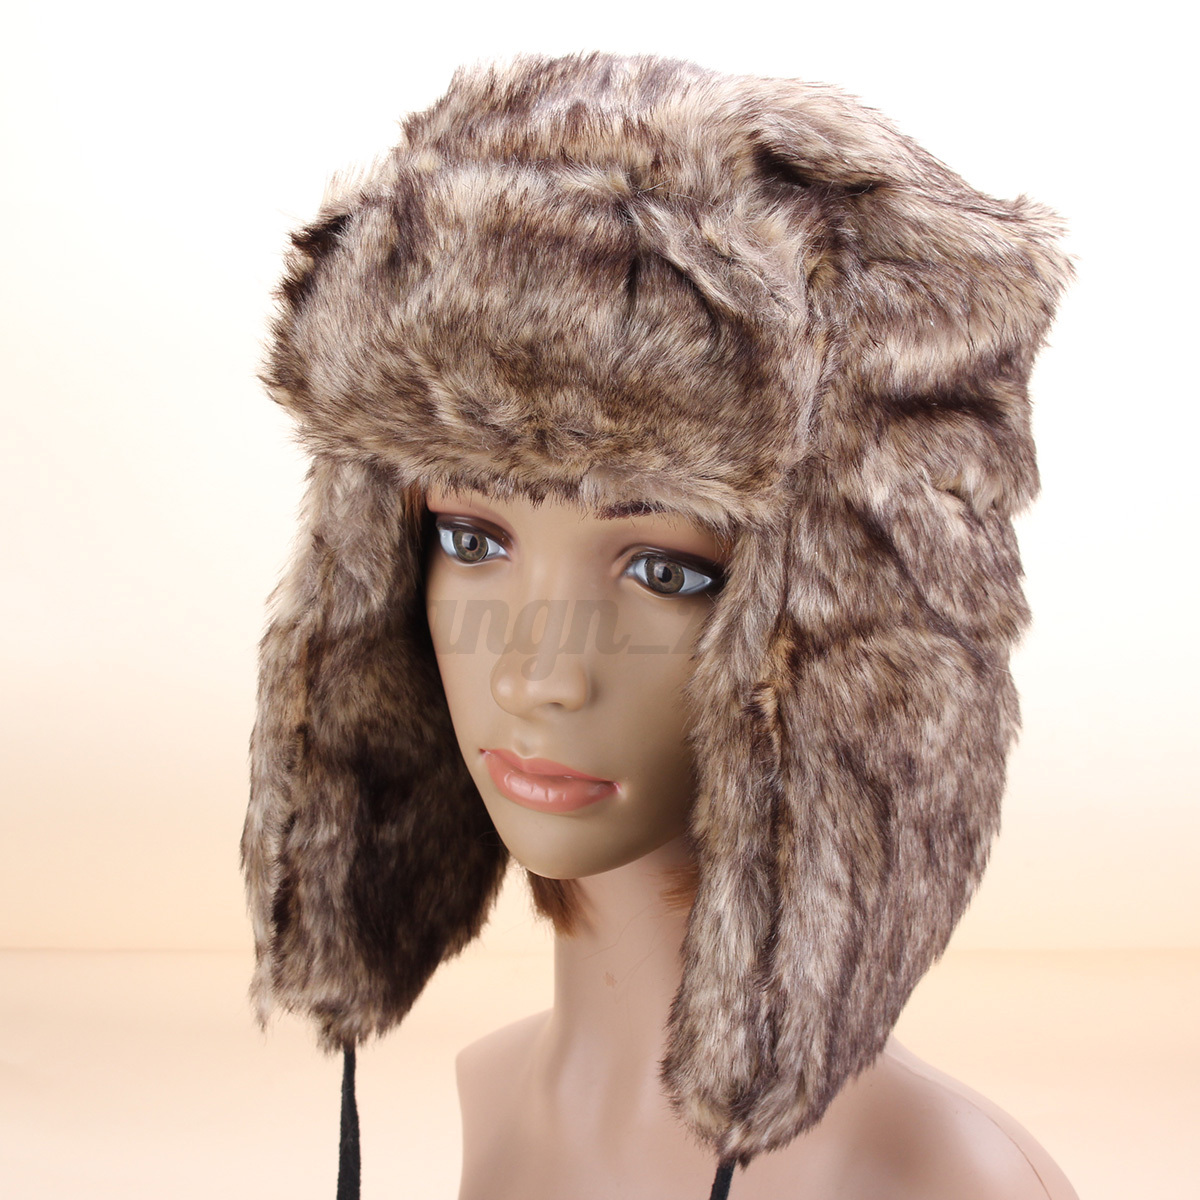 chapeau bonnet russe chapka femme faux fourrure de renard ski hiver hat cap ebay. Black Bedroom Furniture Sets. Home Design Ideas